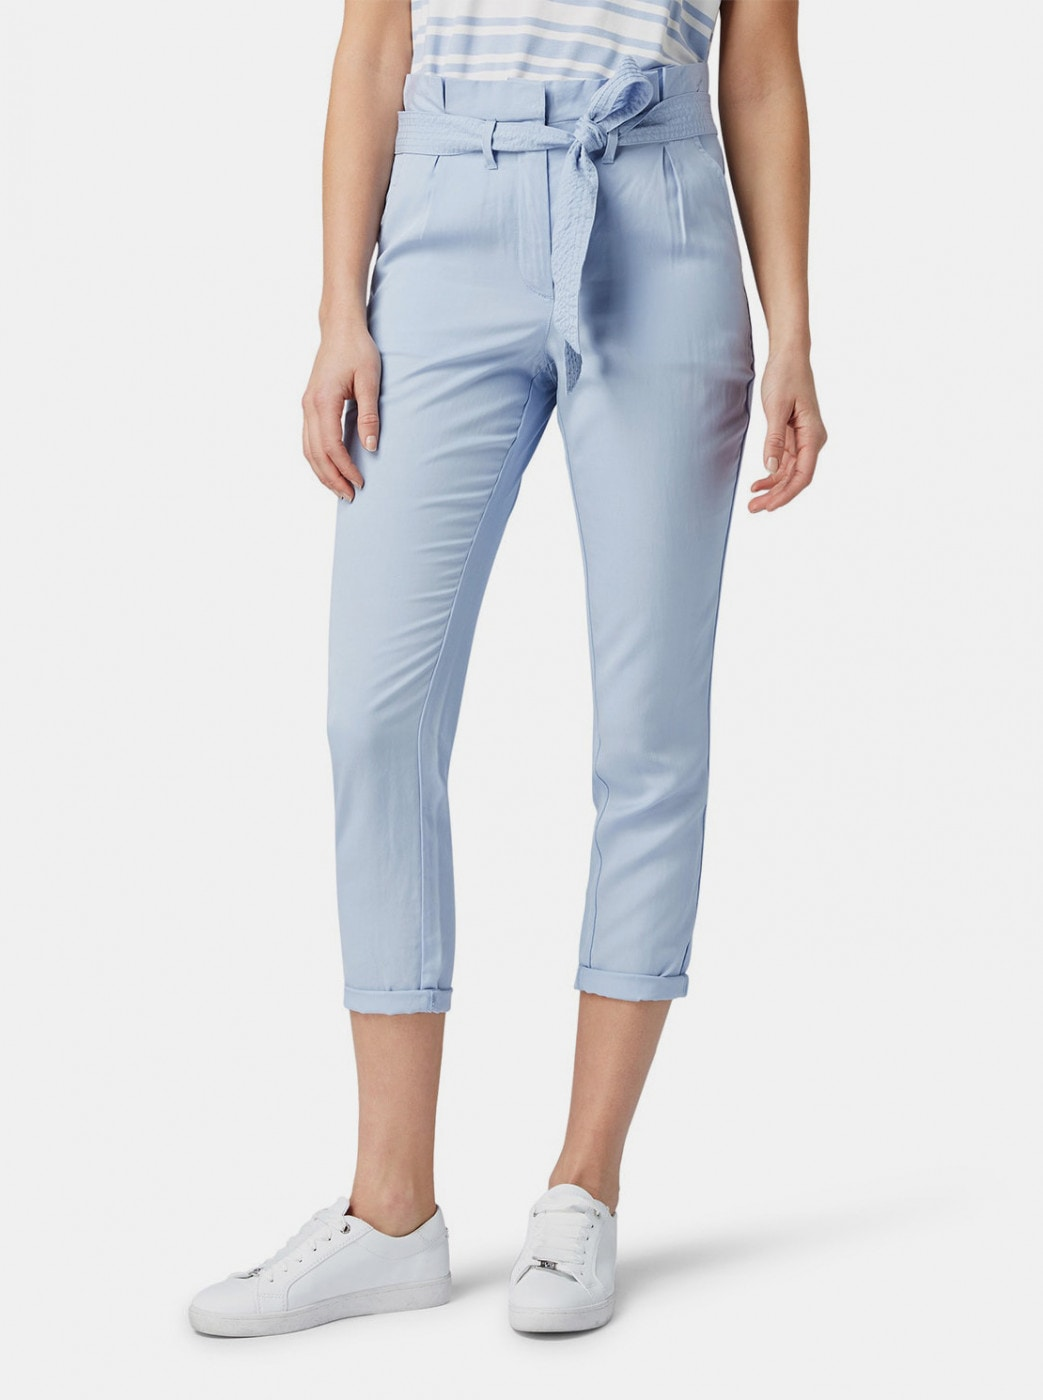 Tom Tailor Blue Women's Cropped Pants